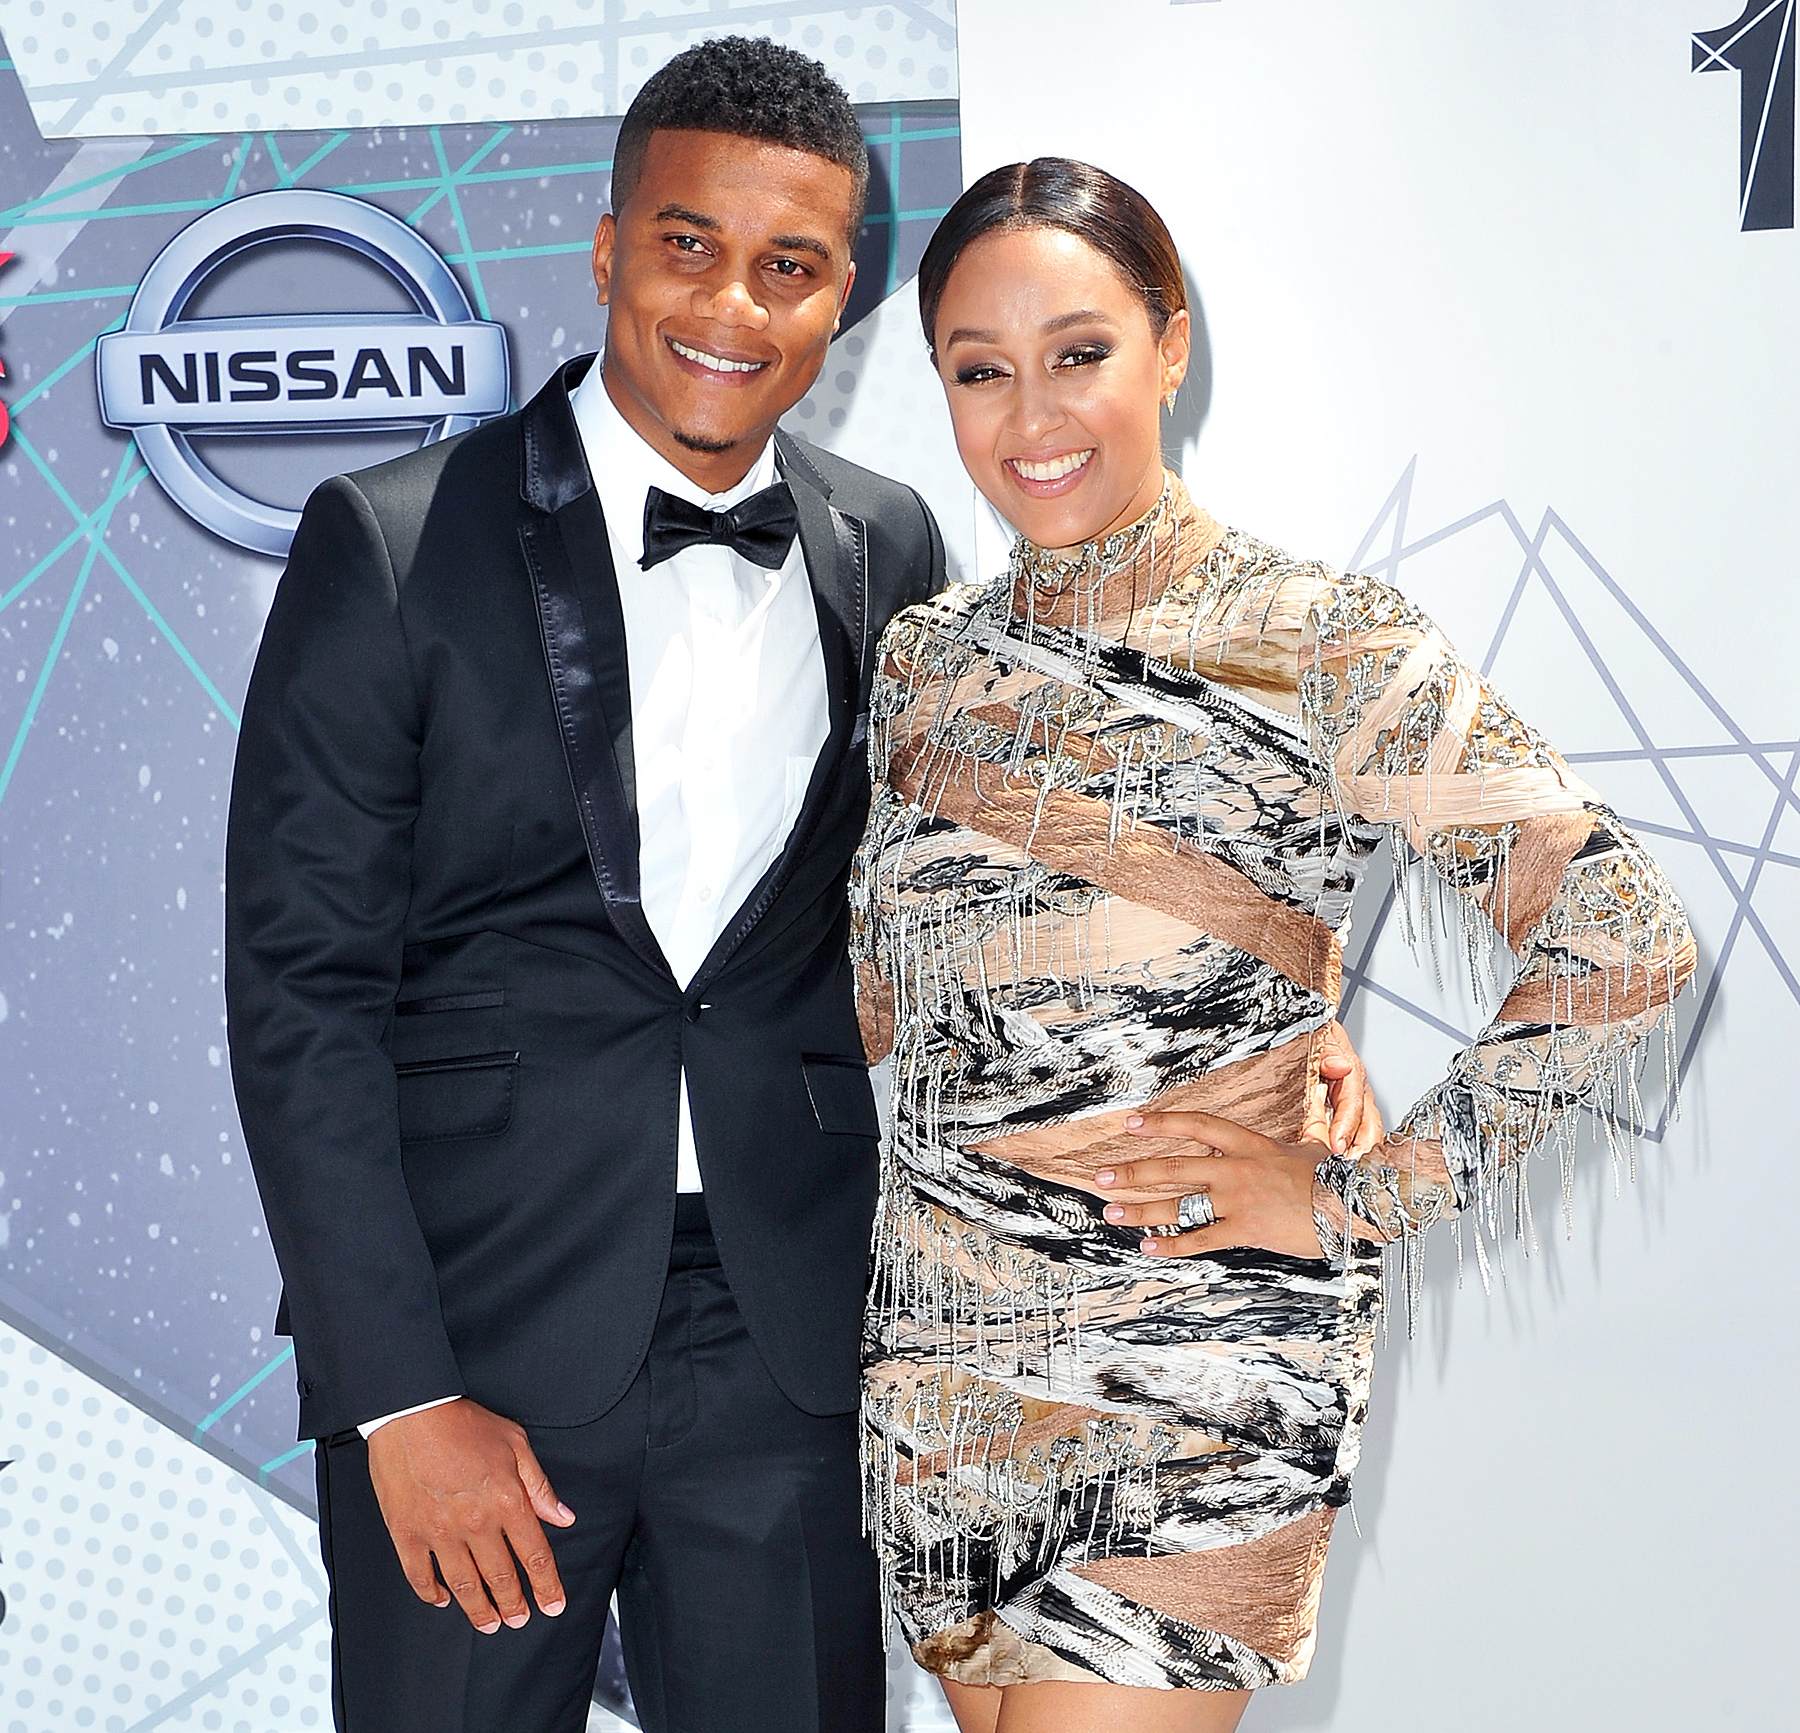 Tia Mowry & Cory Hardrict Welcome Baby No. 2!